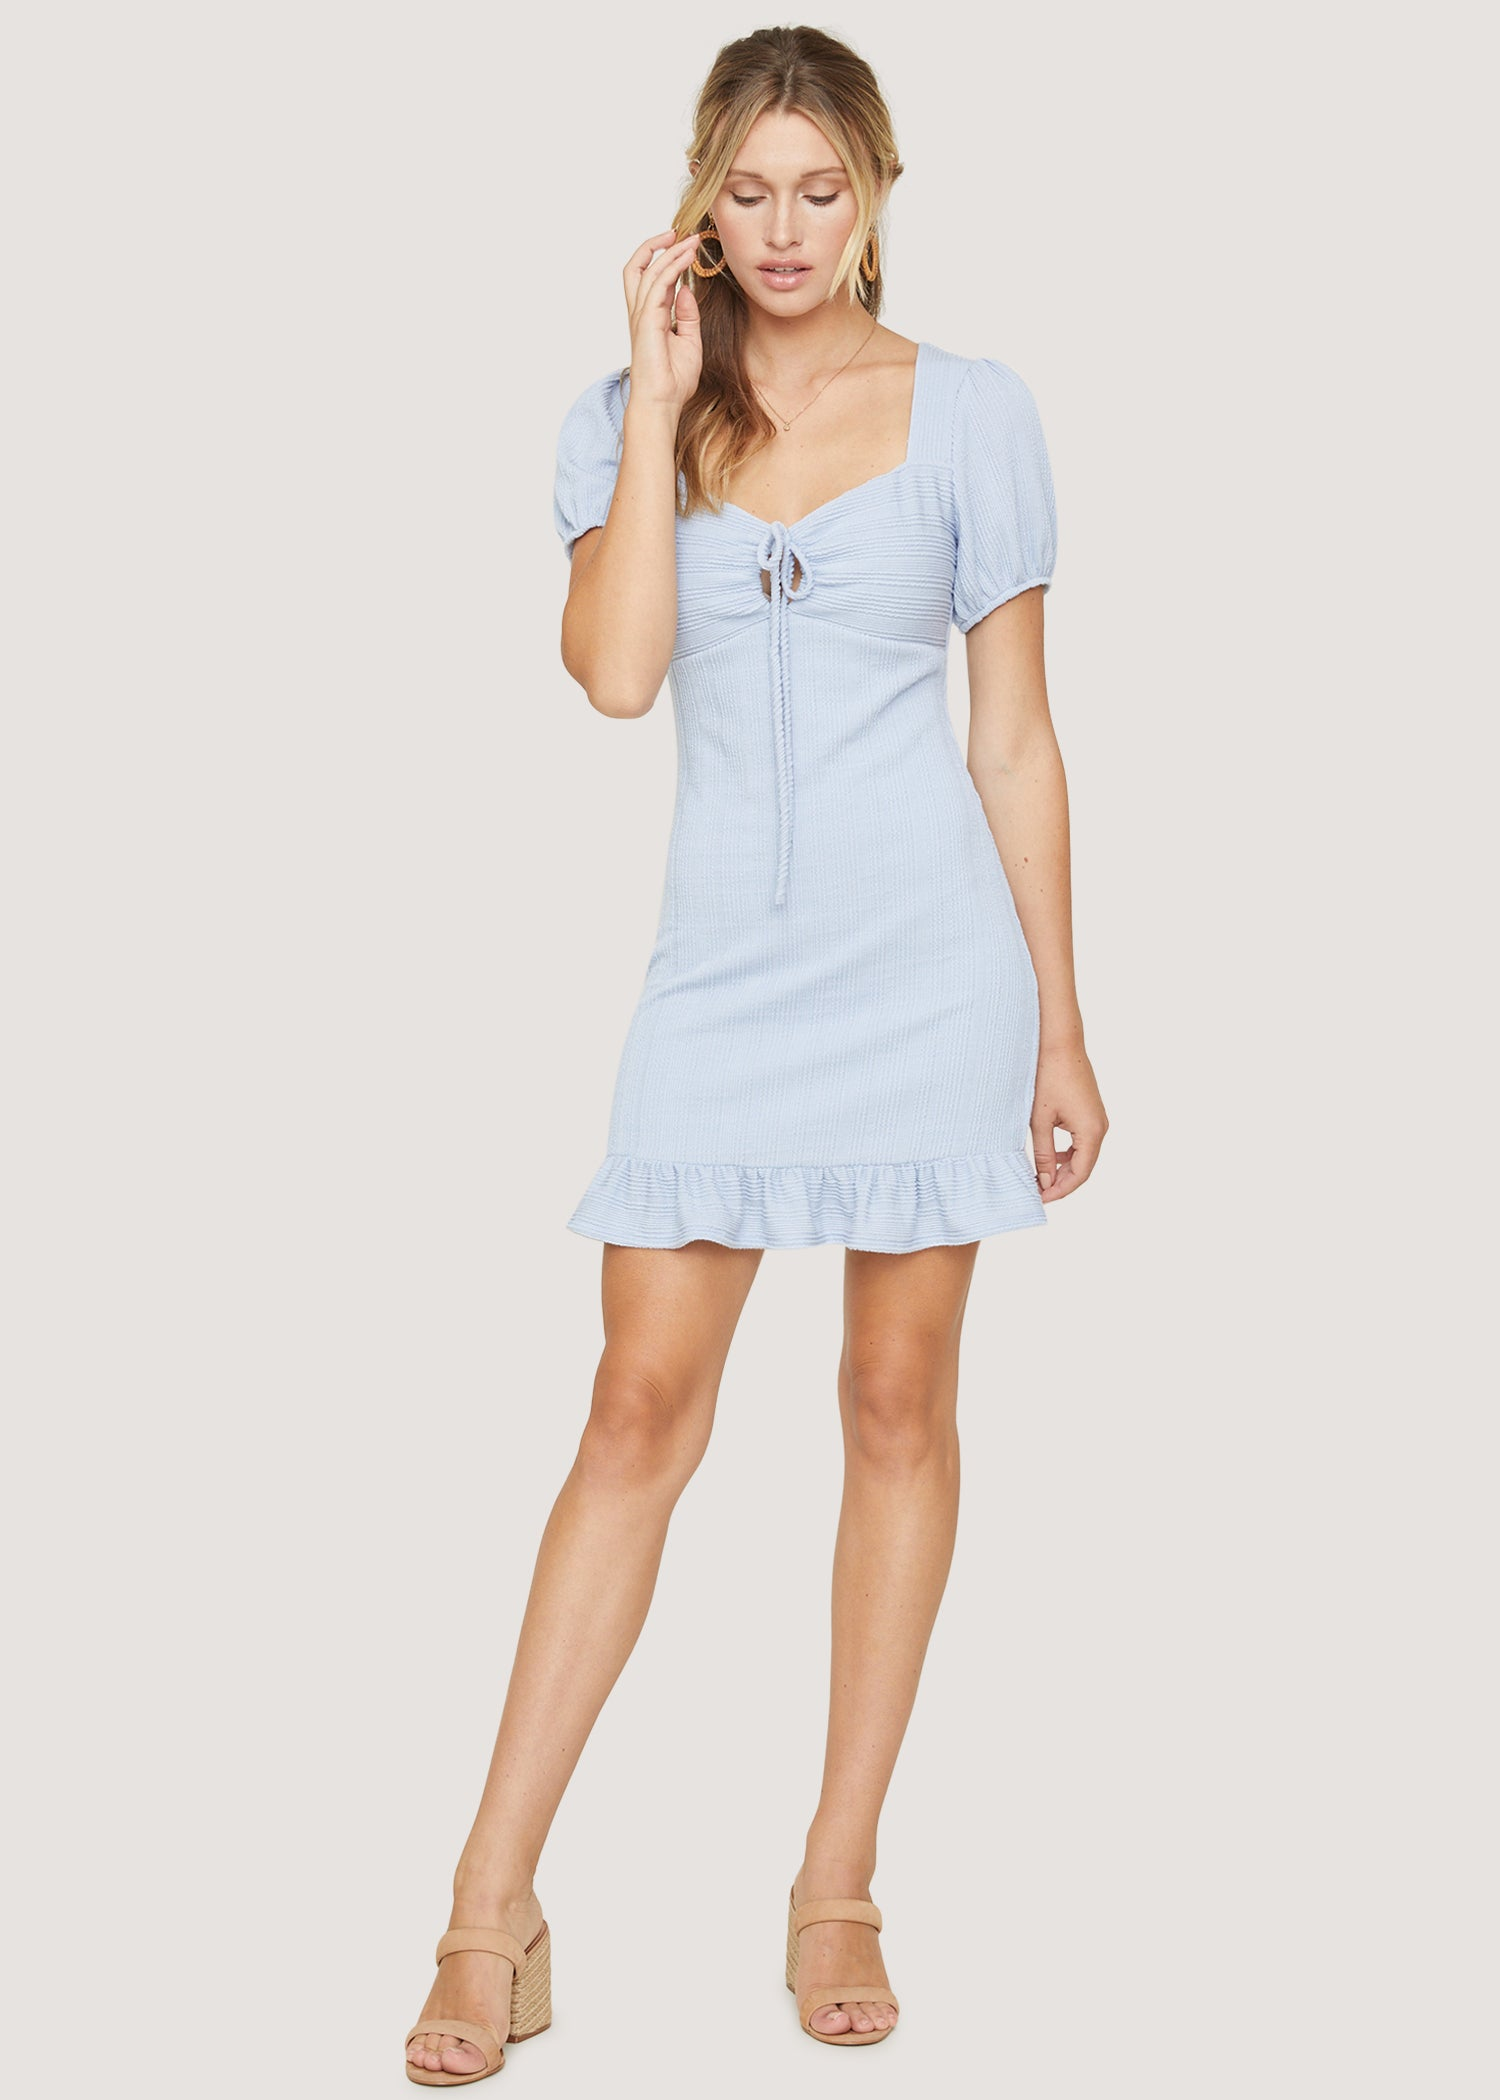 Drift Away Mini Dress